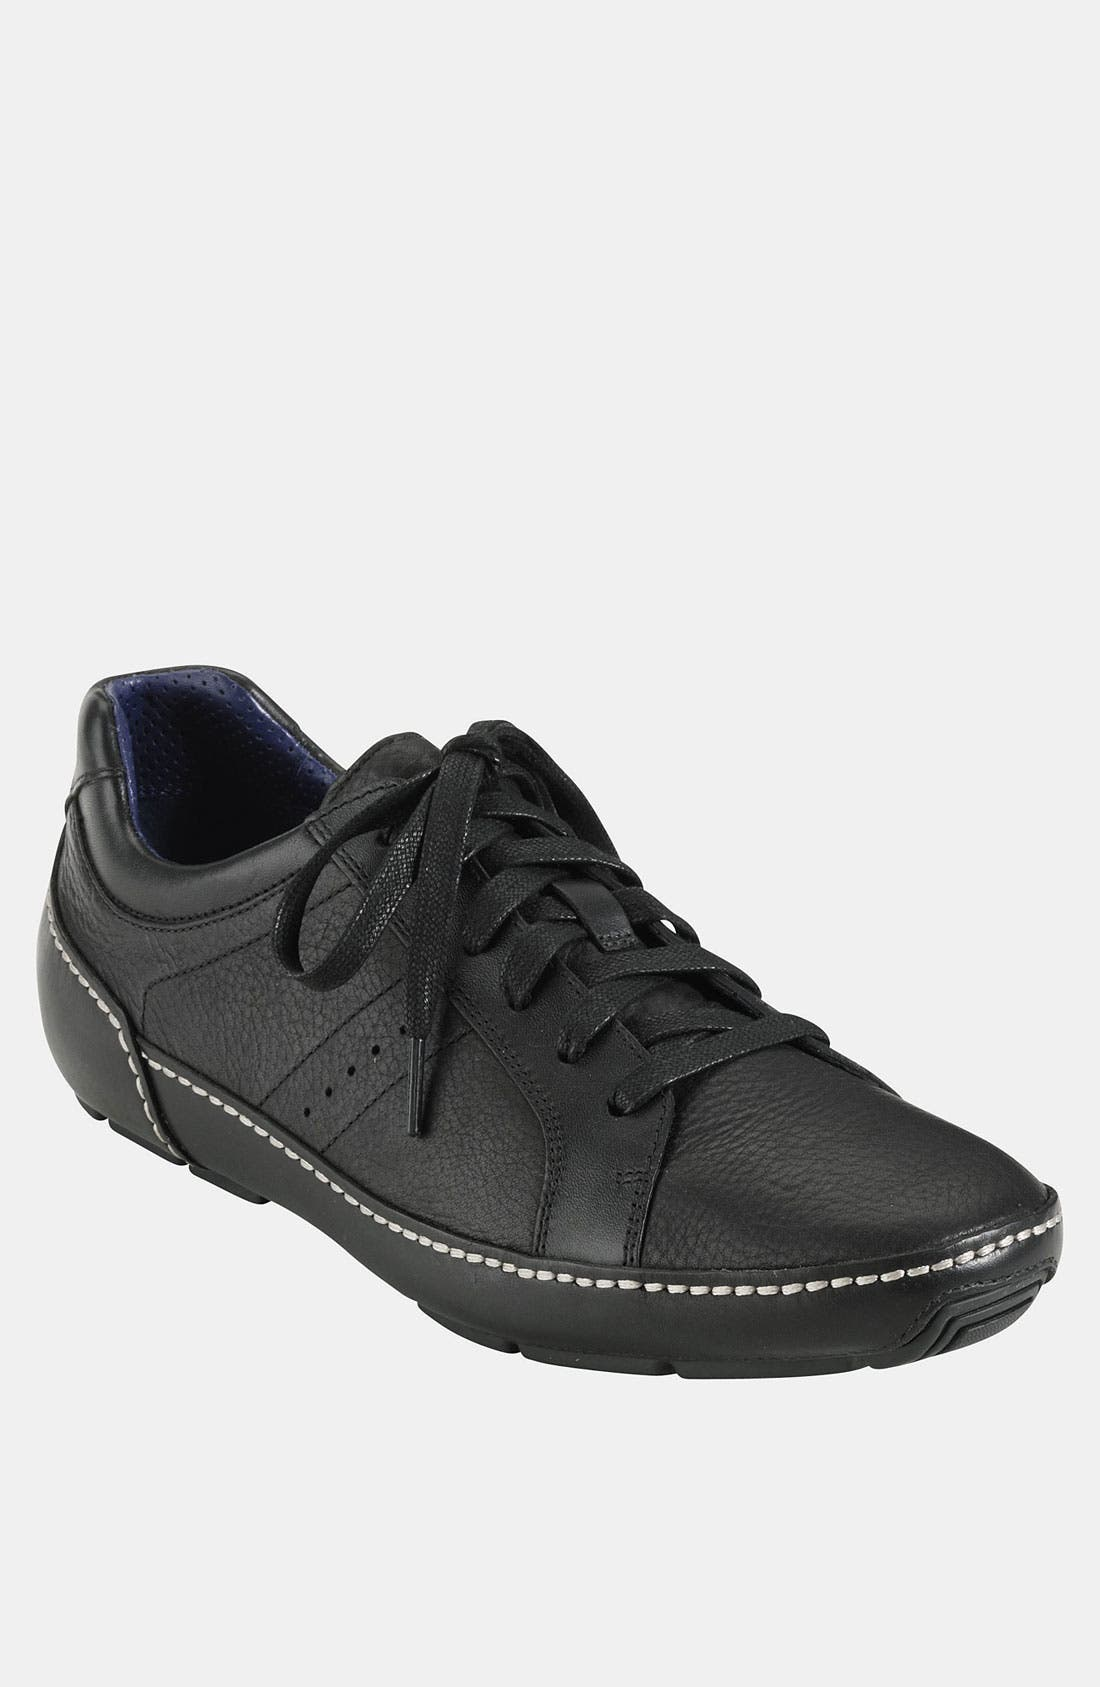 Main Image - Cole Haan 'Air Mitchell' Sneaker